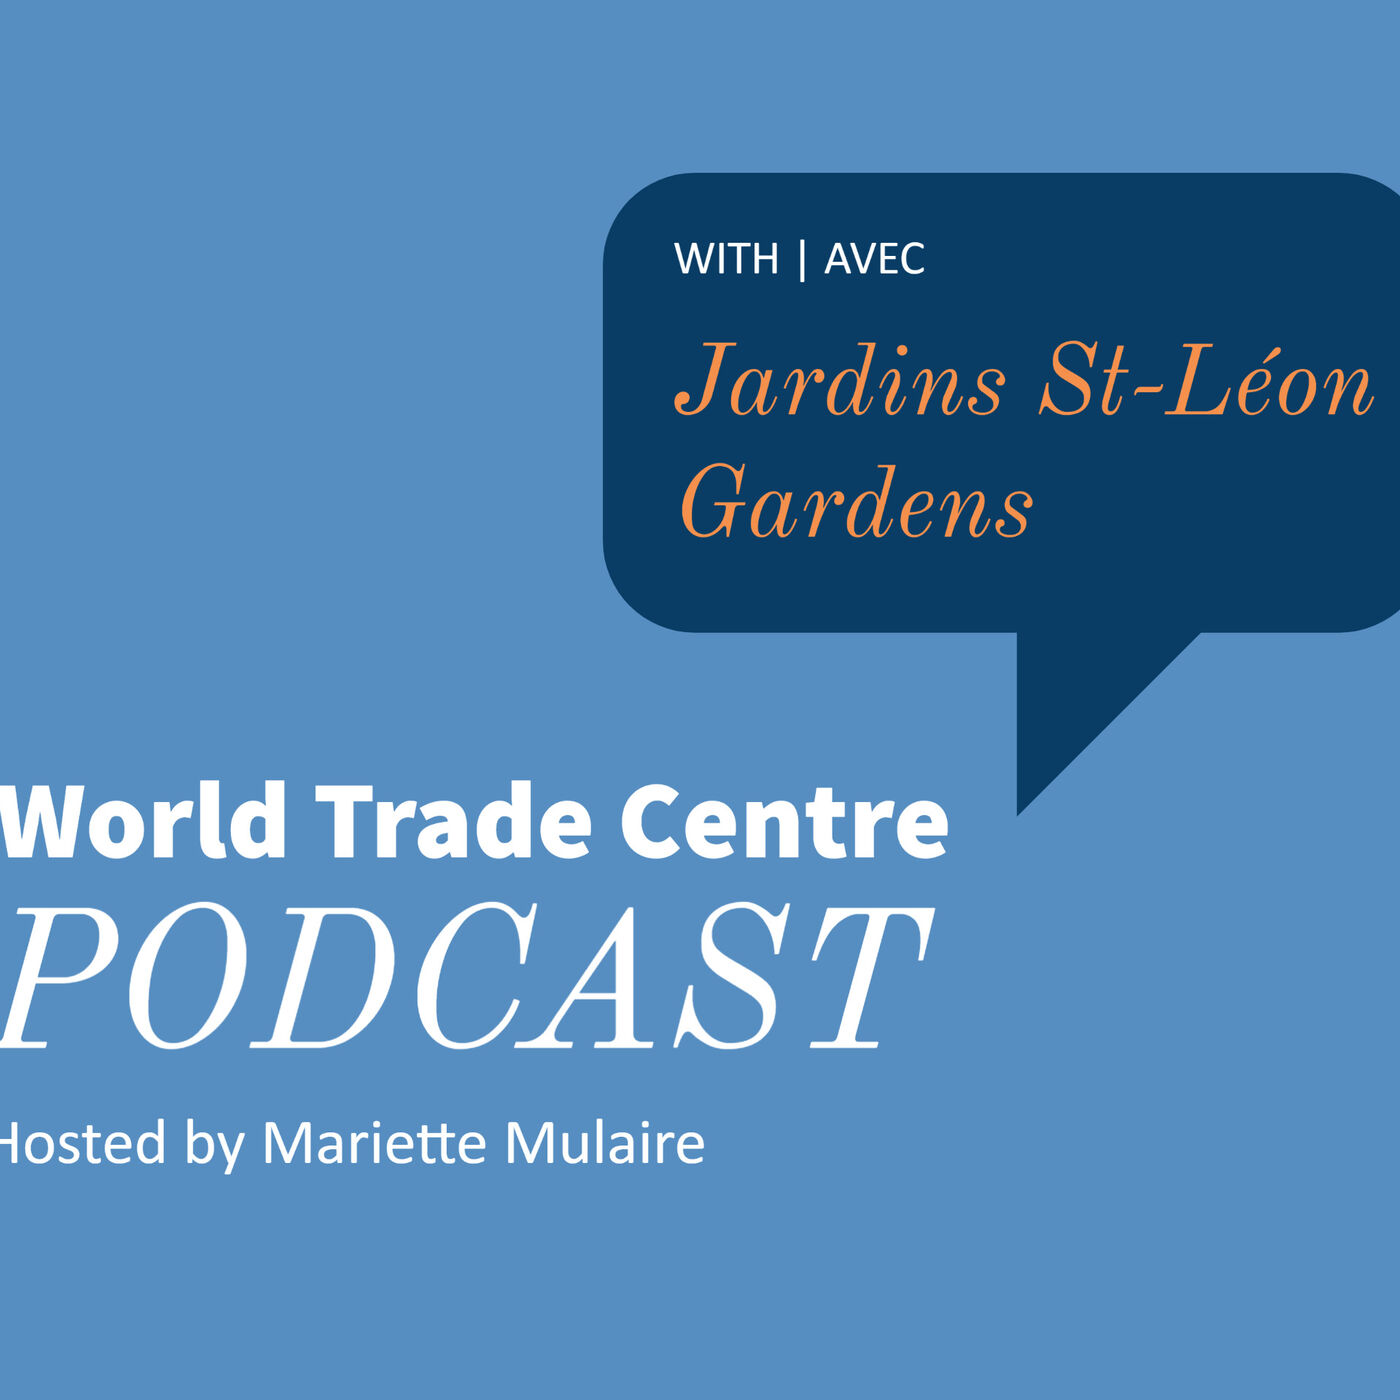 """Hoping to have a very good year amid this pandemic"" 